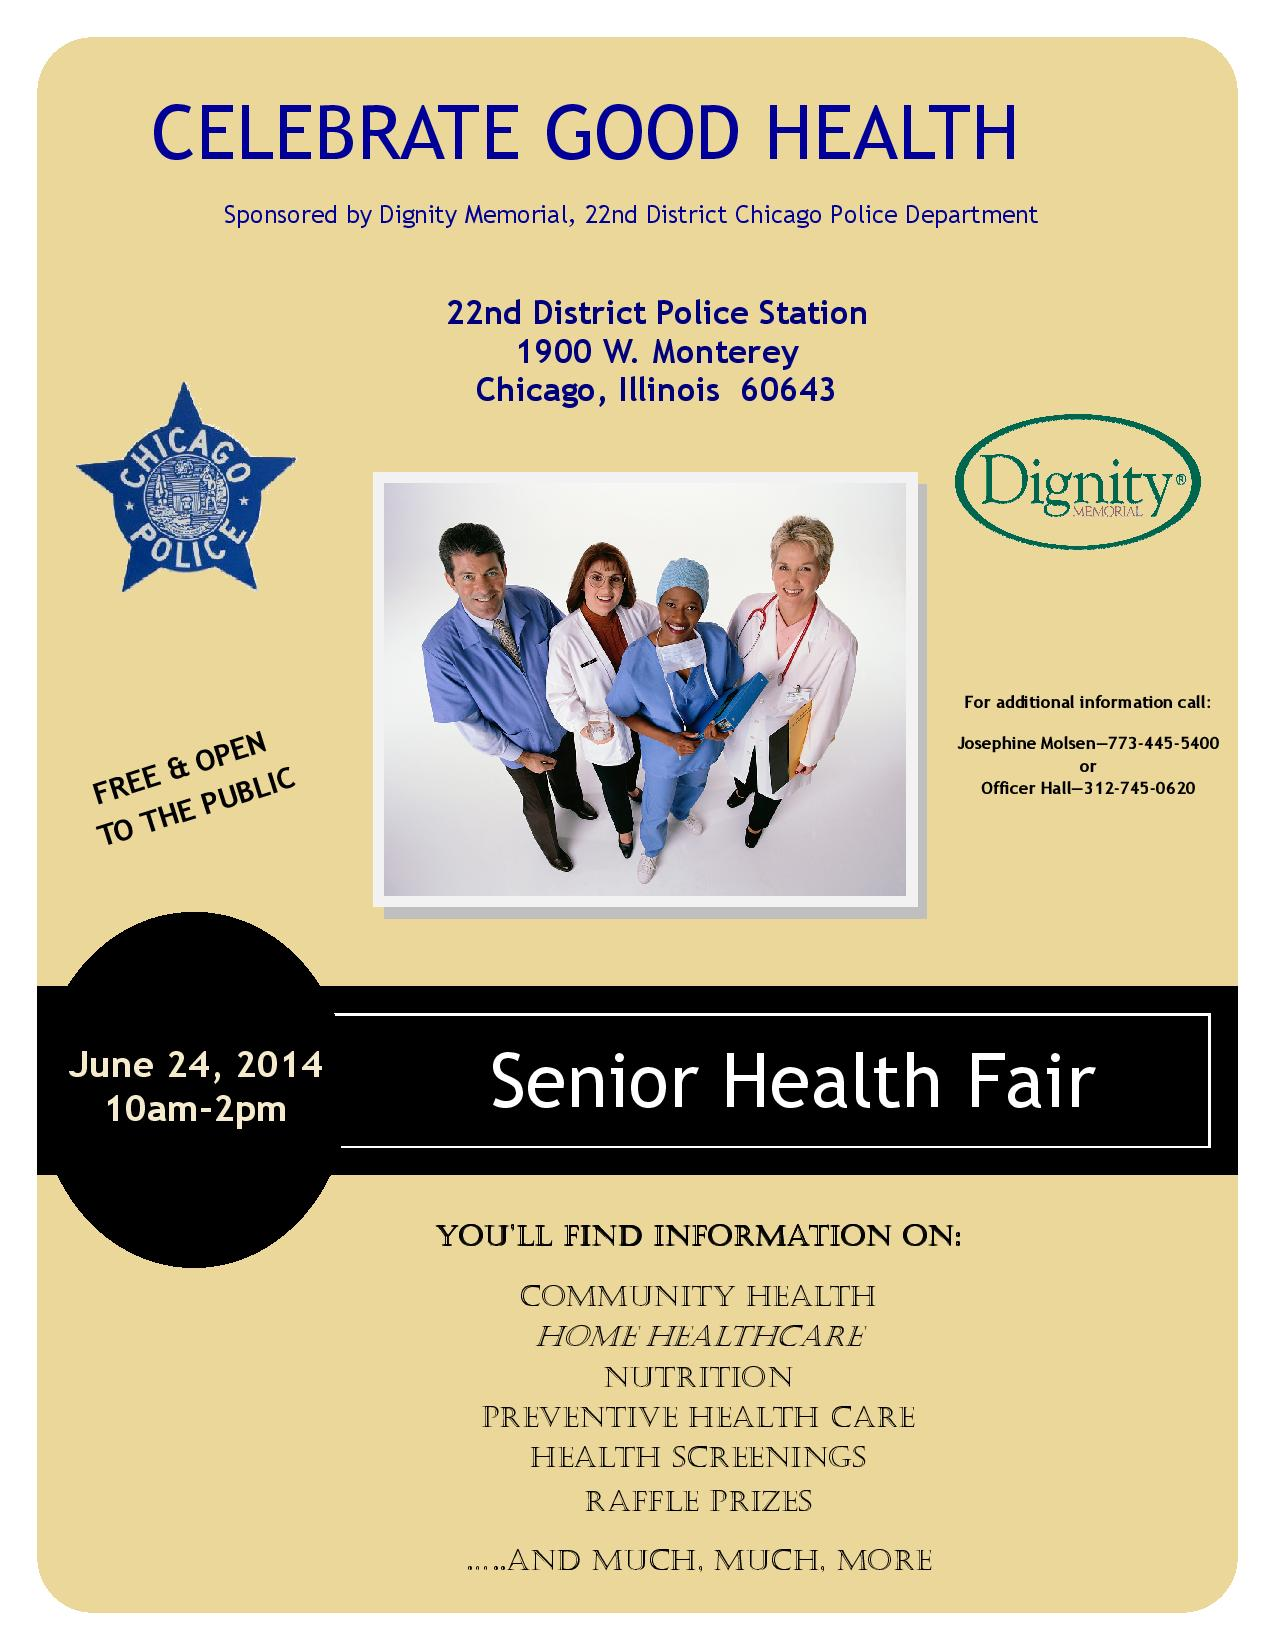 Senior Health Fair Flyer Senior Health Fair Flyer